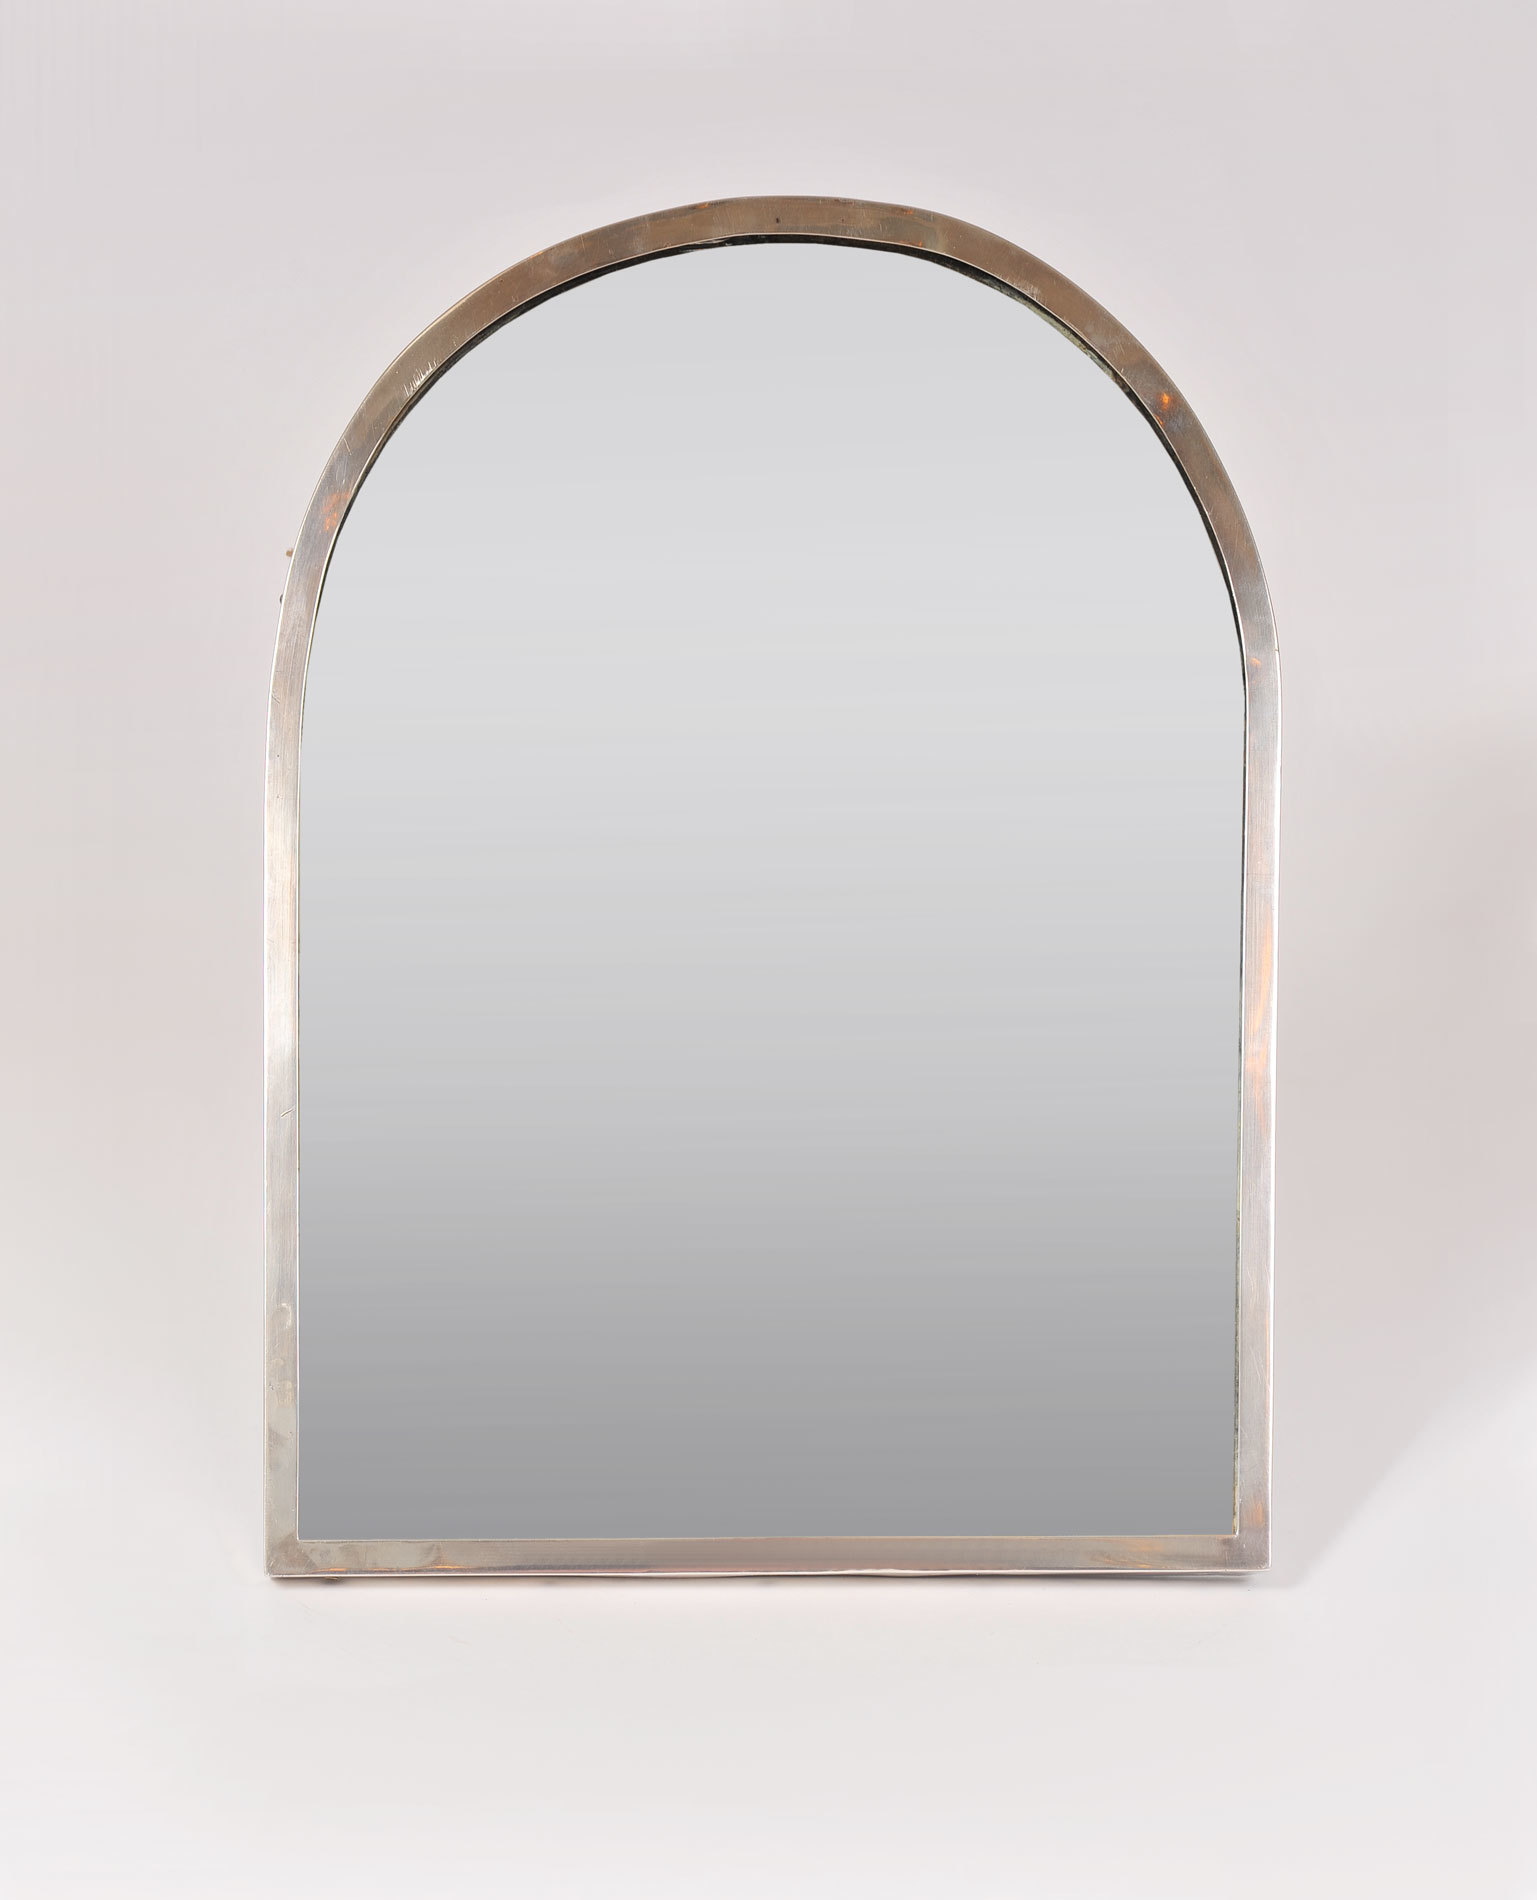 The image for Silver Plate Arch Mirror 02